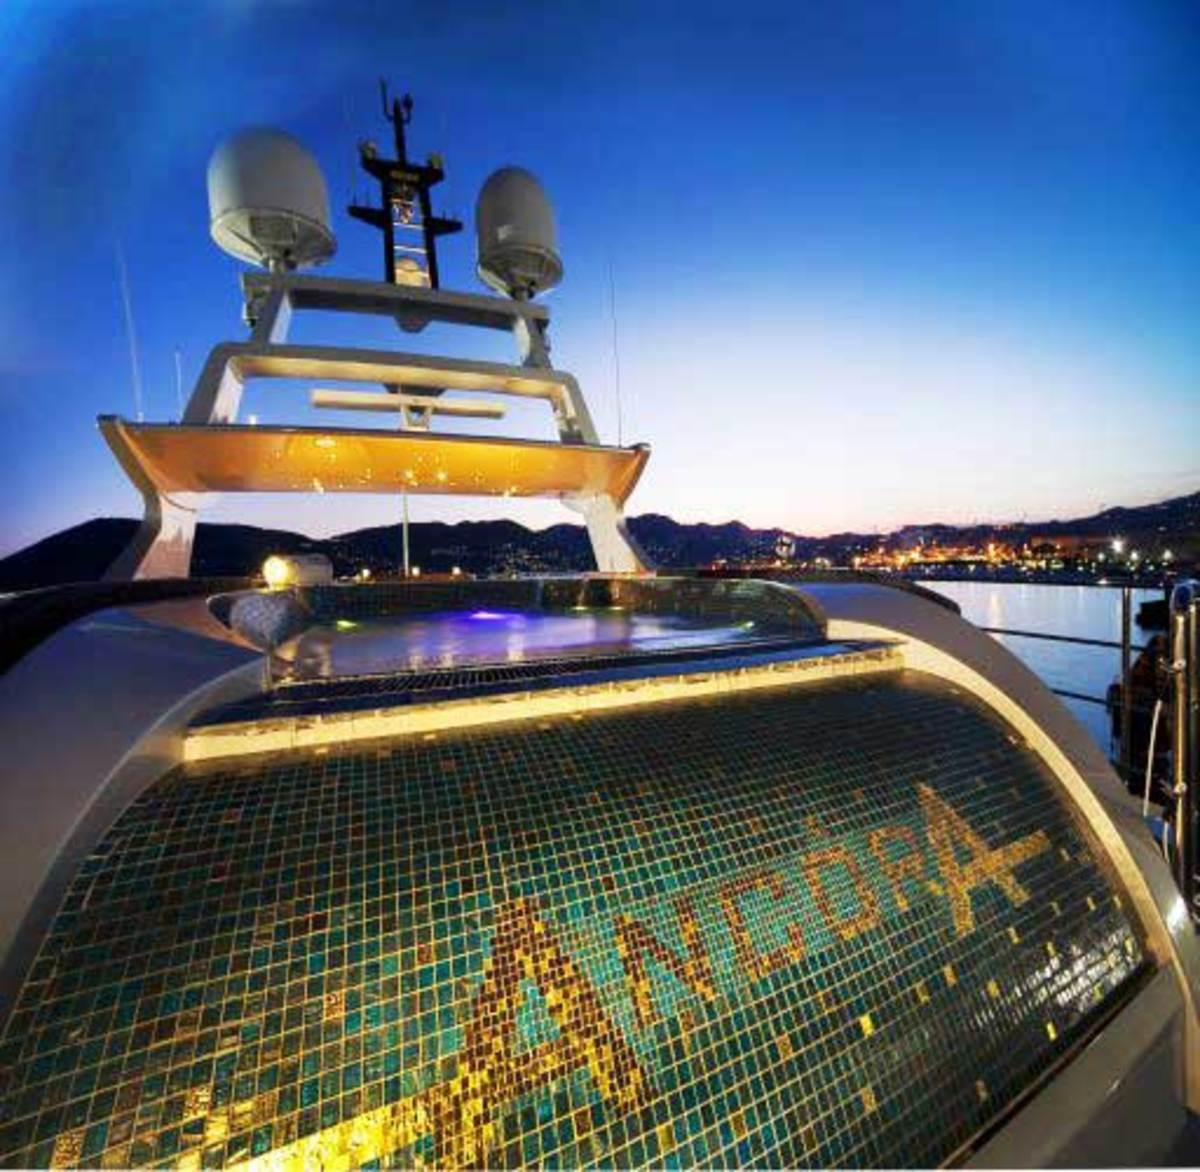 The aft sundeck of Ancora is equipped with a remarkable custom infinity pool lined with mosaic tiles.